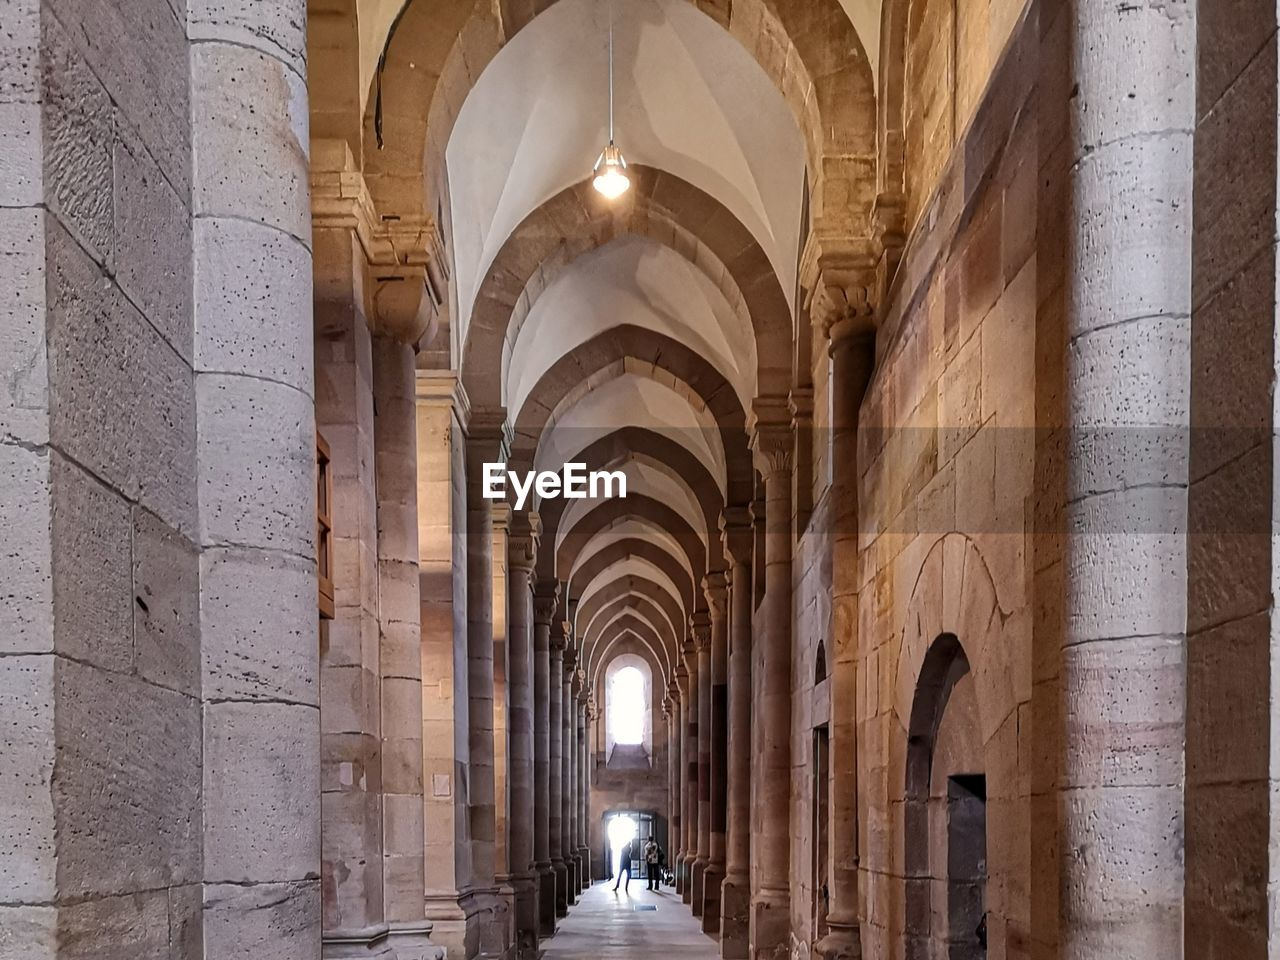 architecture, arch, architectural column, built structure, building, arcade, the past, history, in a row, no people, corridor, indoors, the way forward, diminishing perspective, direction, day, colonnade, lighting equipment, ceiling, abbey, arched